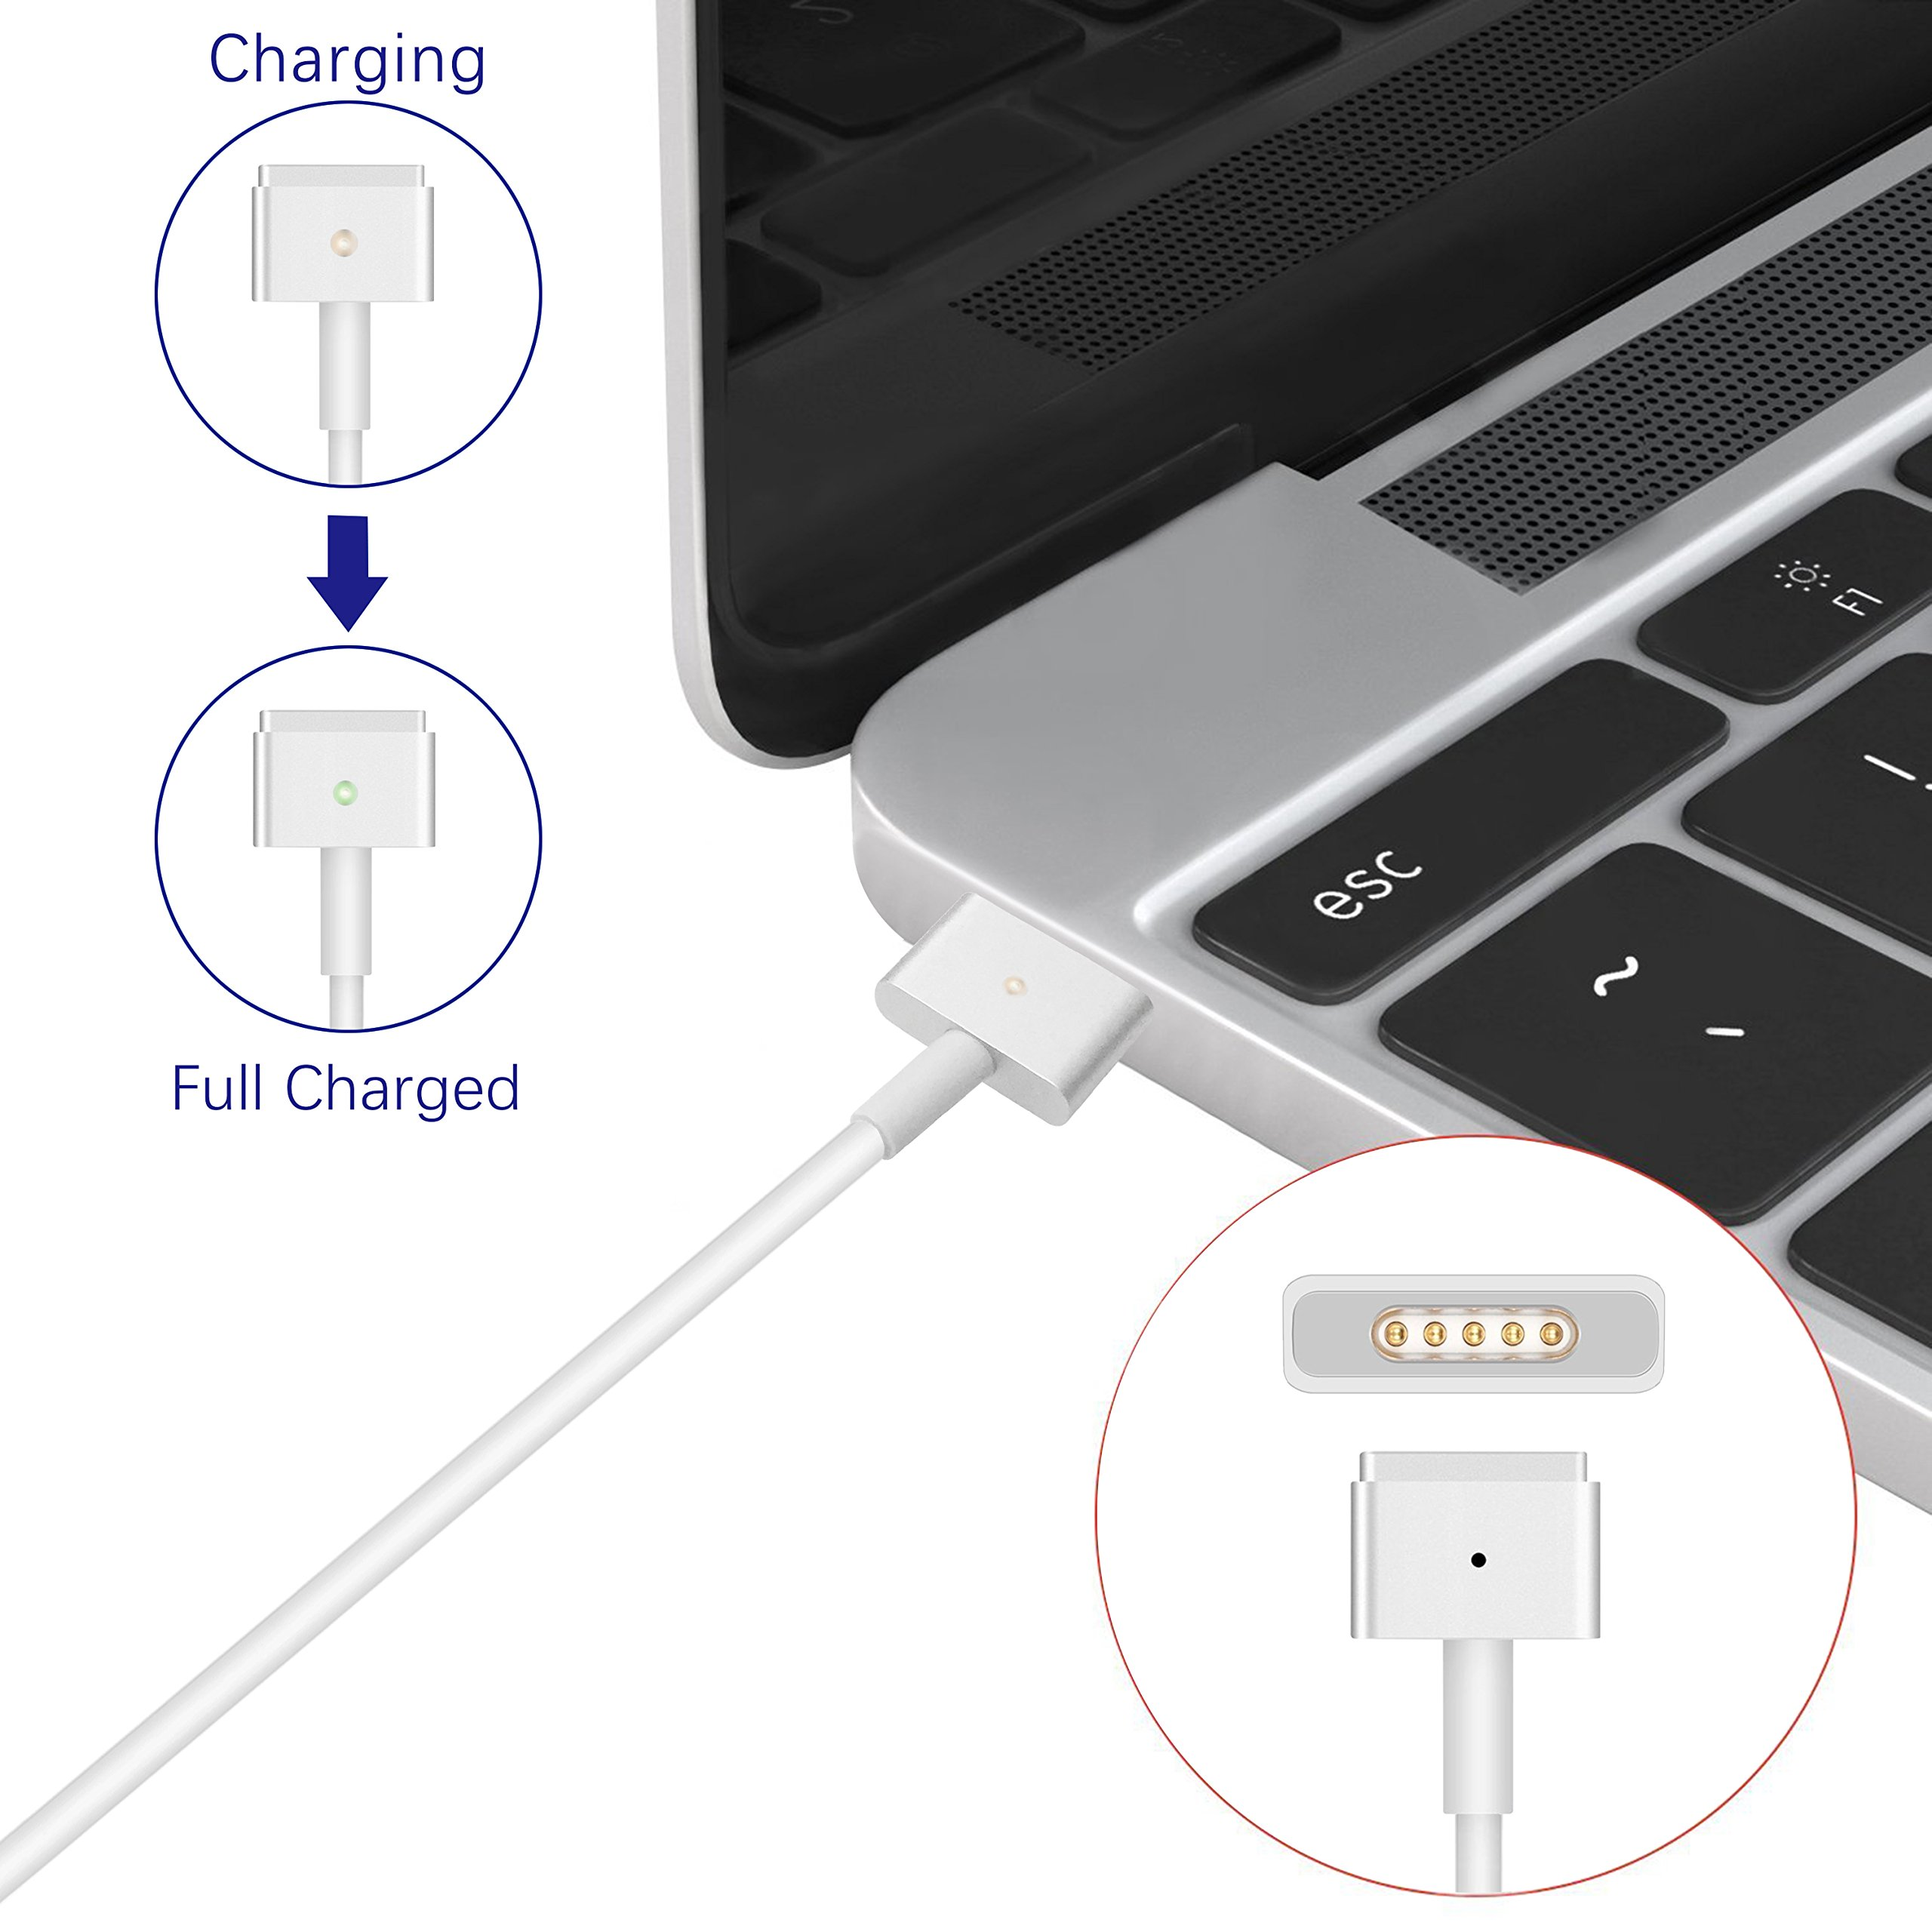 MacBook pro Charger, and Compatible with 45W, Aonear 60W Magsafe 2 T-Tip Replacement Adapter for 13 inch MacBook Pro Charger- After Late 2012 by aonear (Image #4)